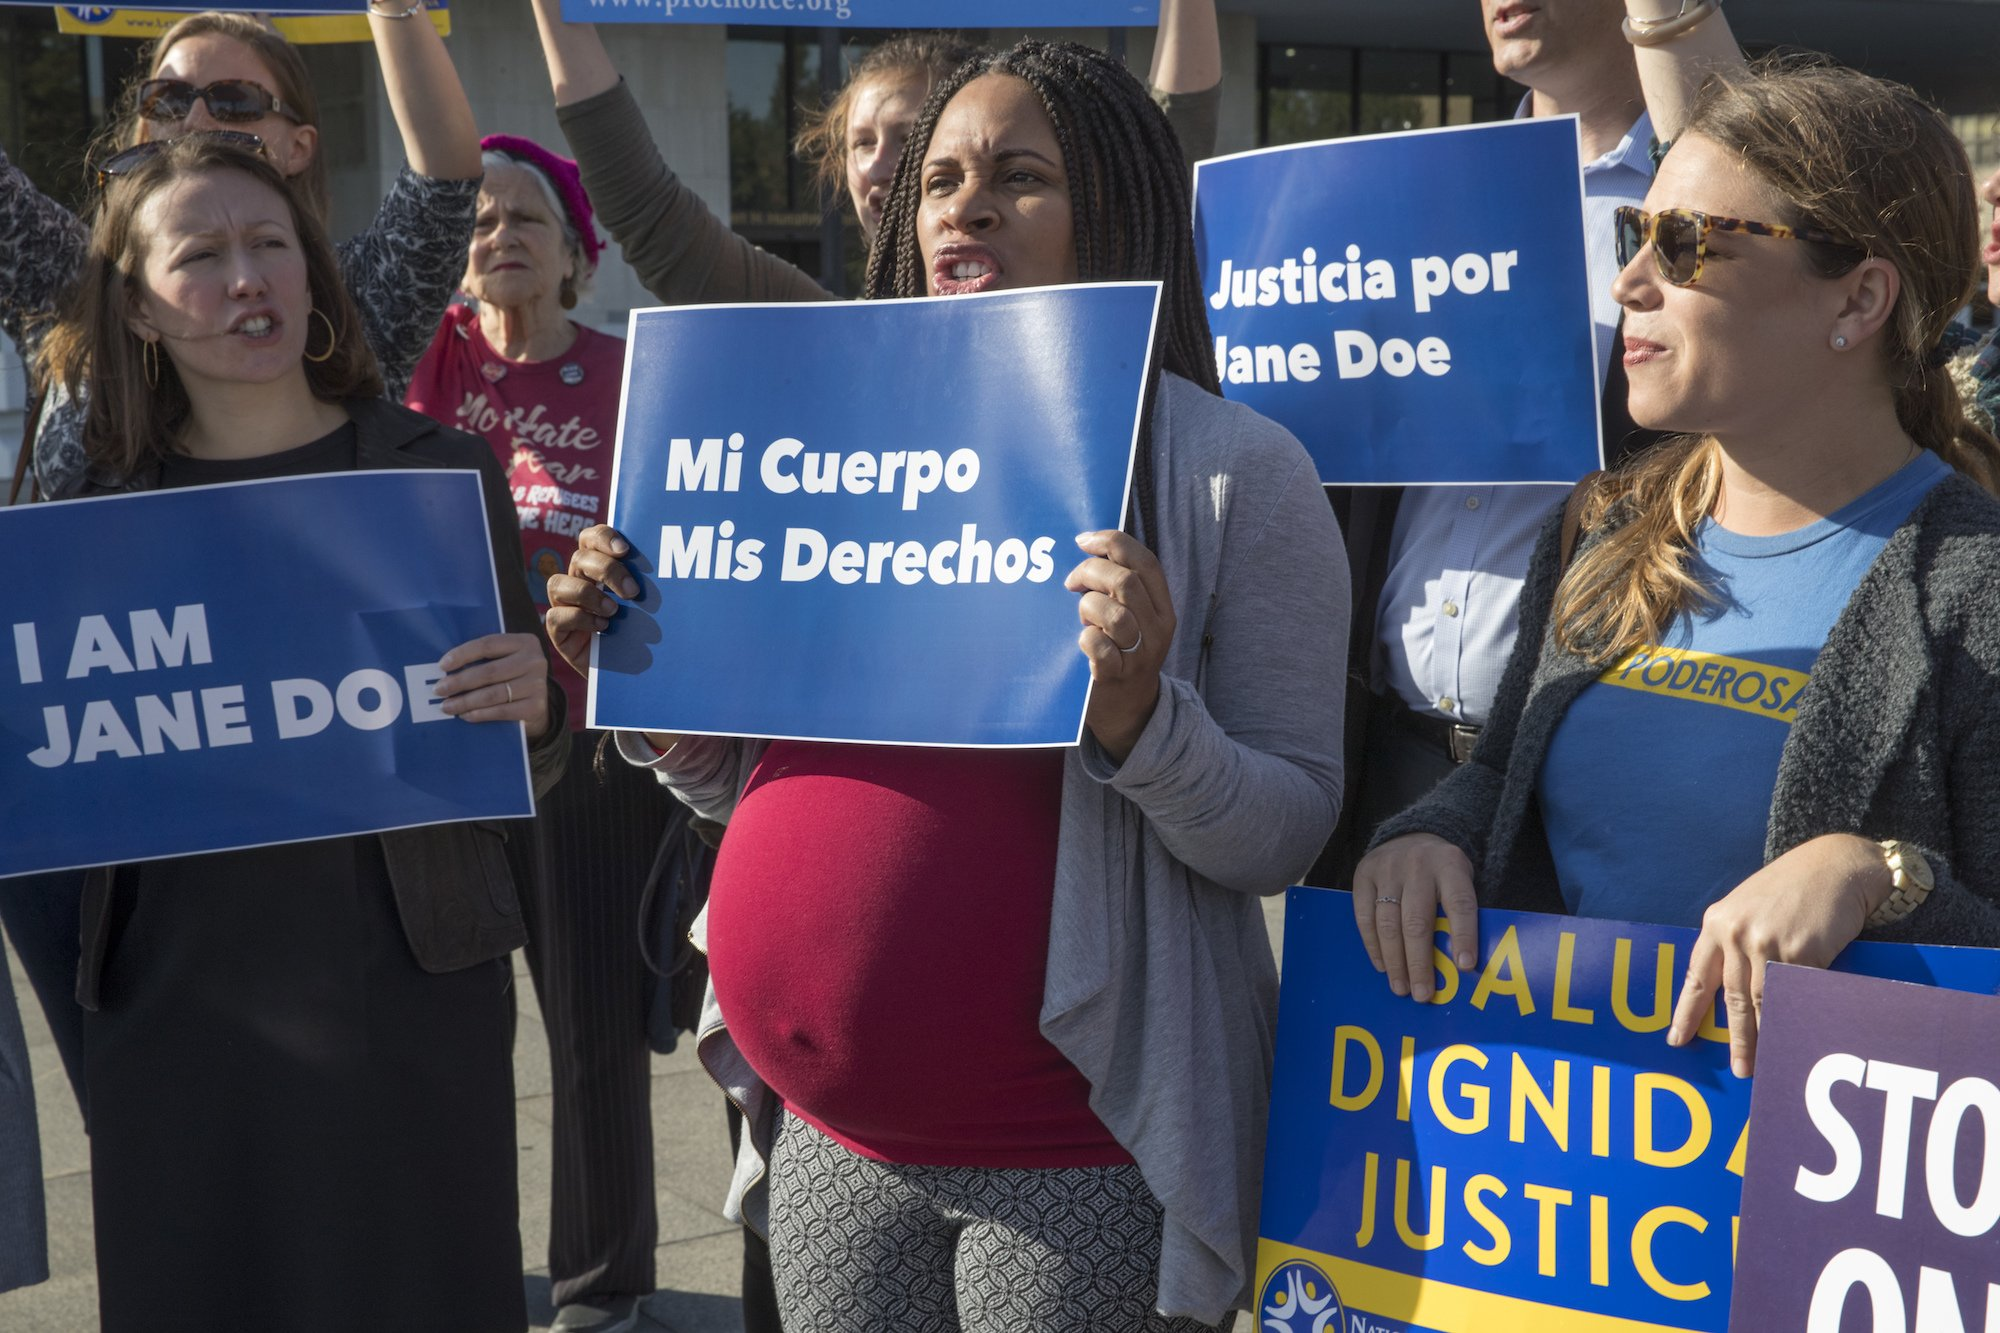 A 17-year-old immigrant fights to have an abortion